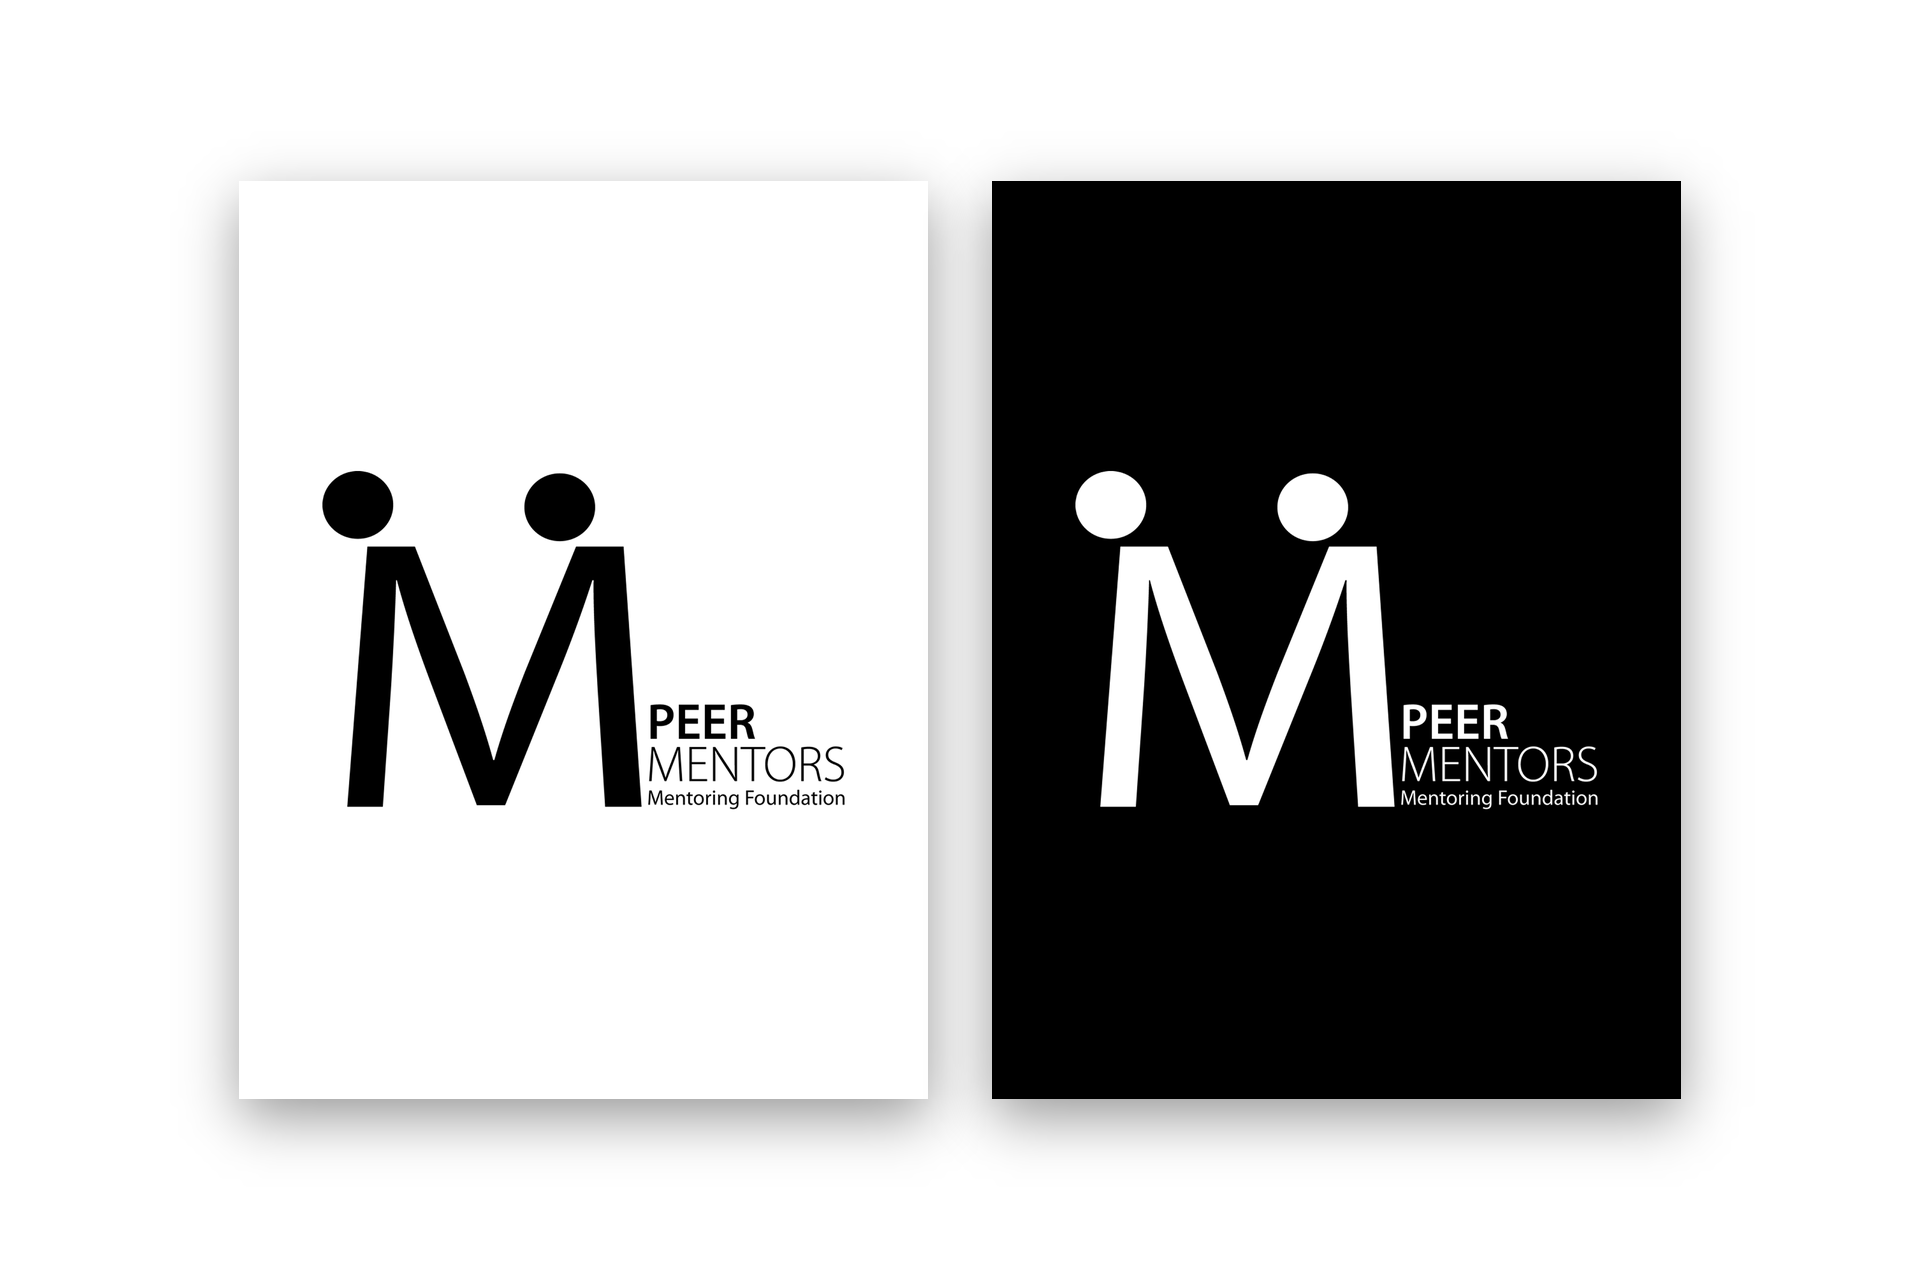 Peer Mentors - Montoring Foundation Logo Design, Visual Identity1